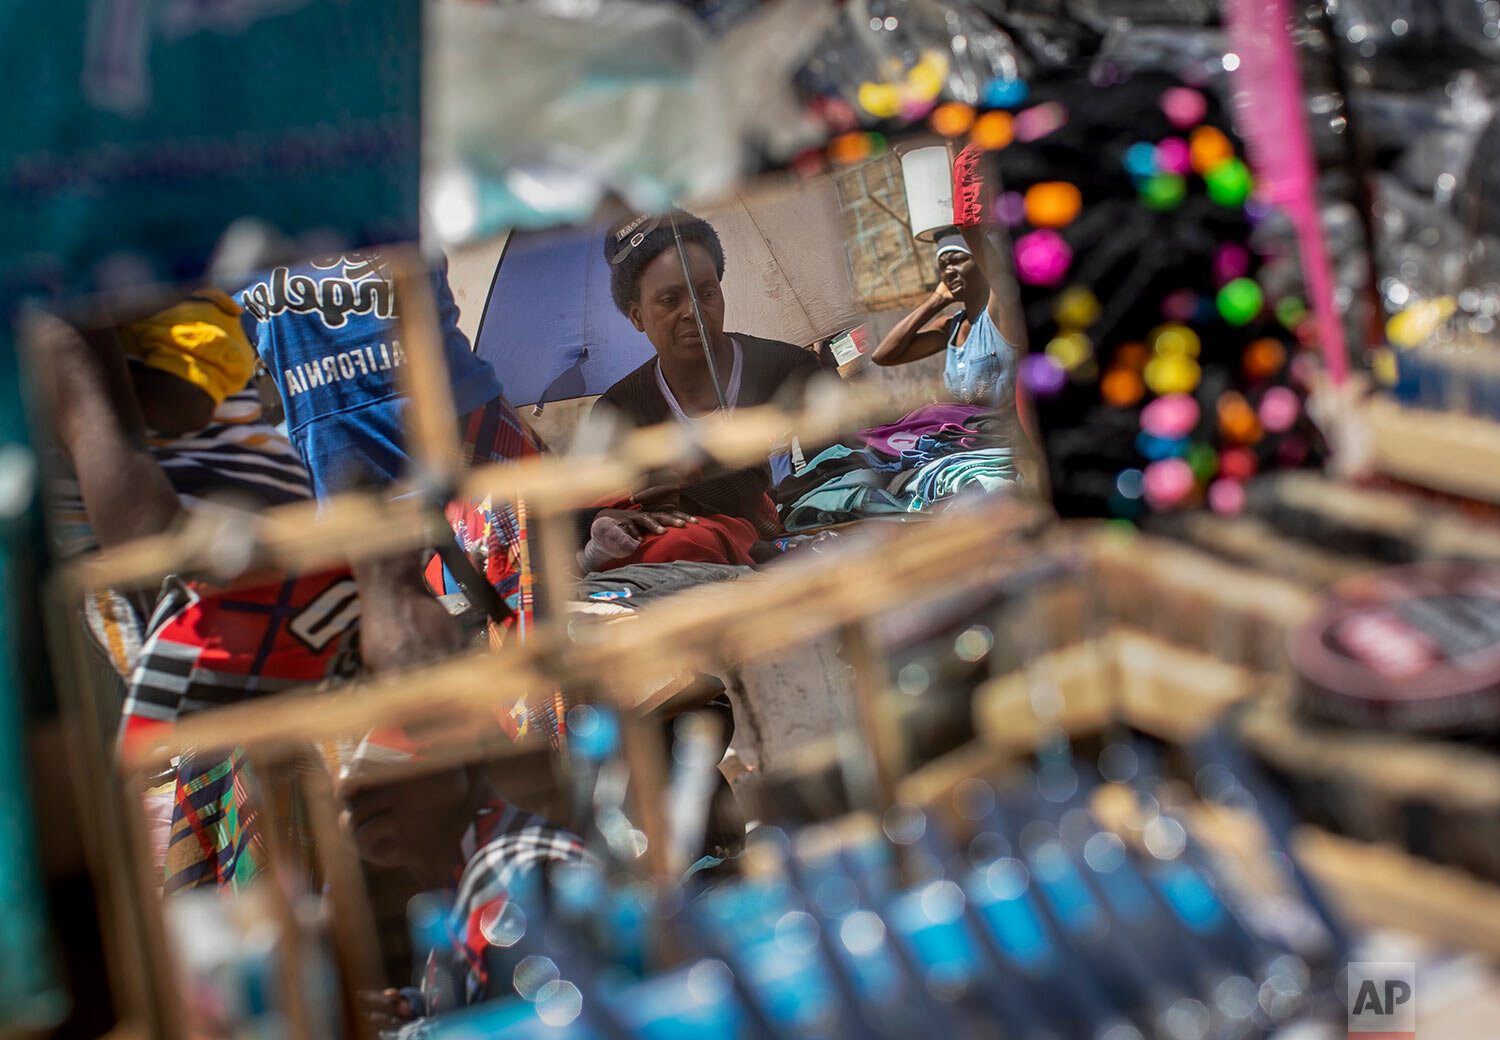 A street seller is seen reflected in mirrors for sale, at a market in the low income neighborhood of Mbare, known to have many supporters of former president Robert Mugabe's ZANU-PF party, in the capital Harare, Zimbabwe, Sept. 9, 2019. (AP Photo/Ben Curtis)